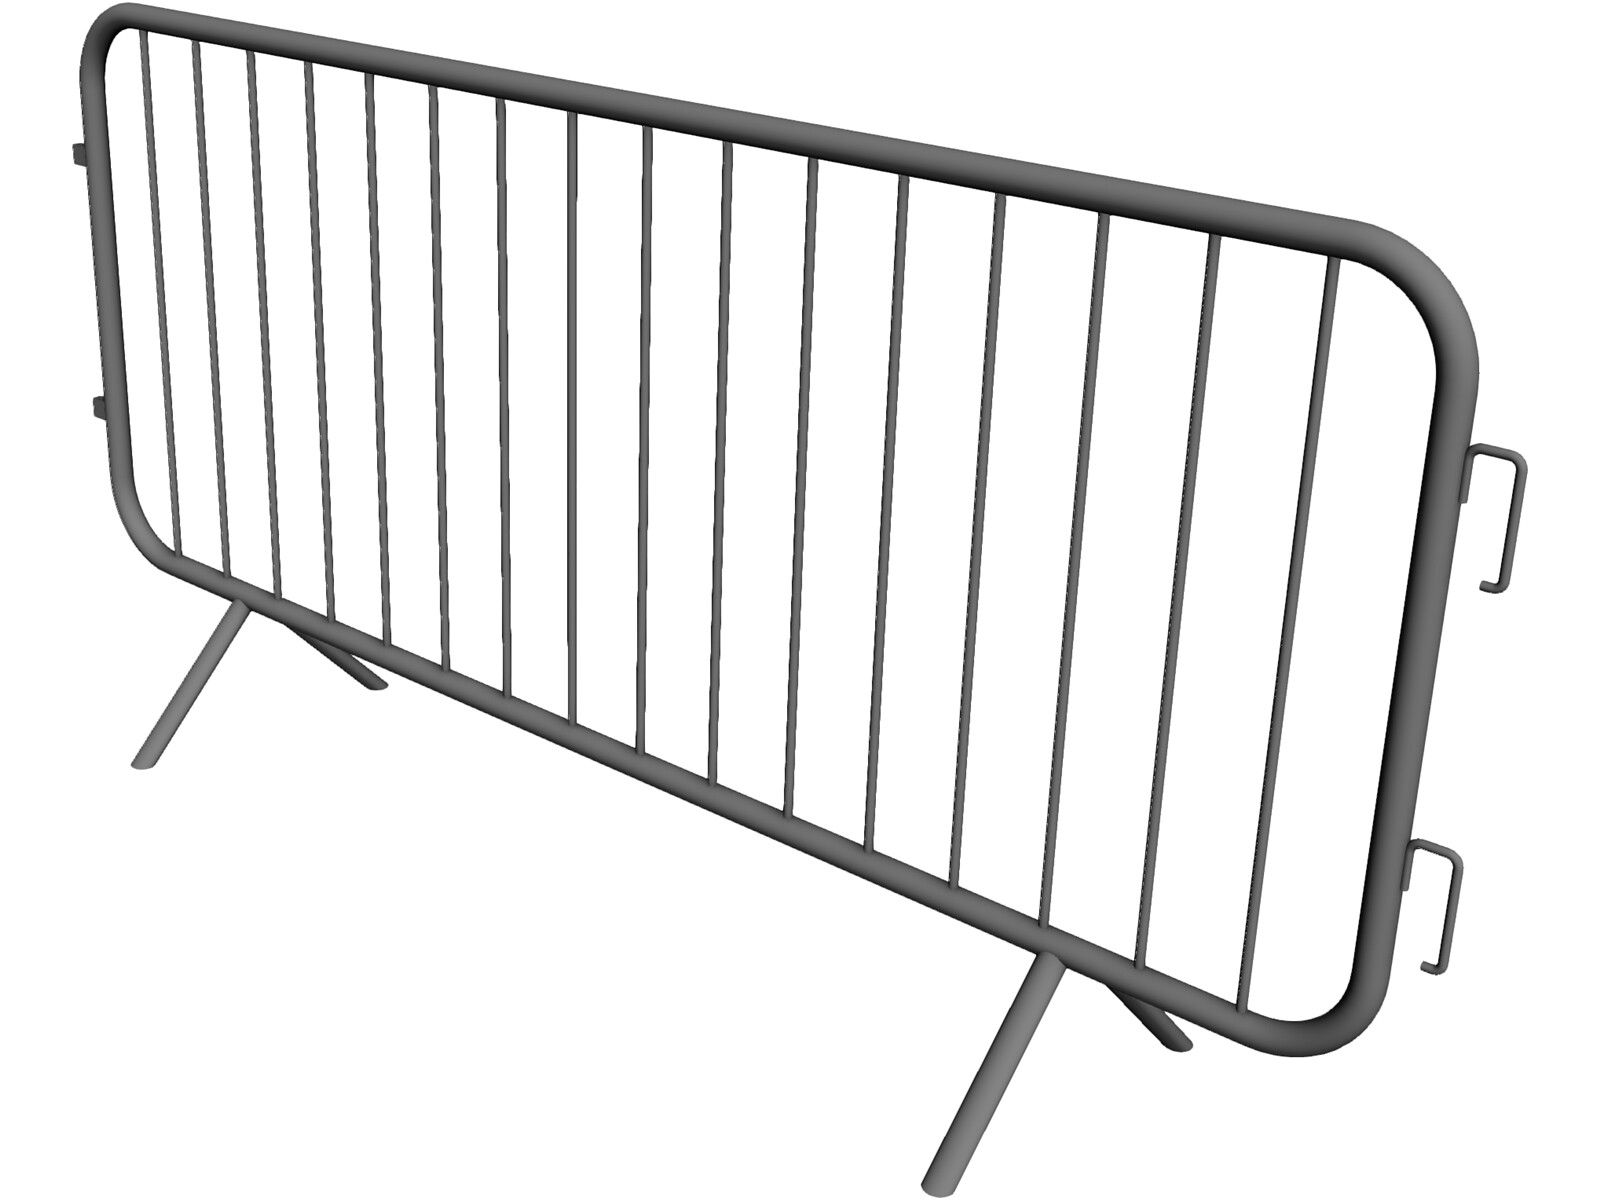 Crowd Control Barrier 3D Model